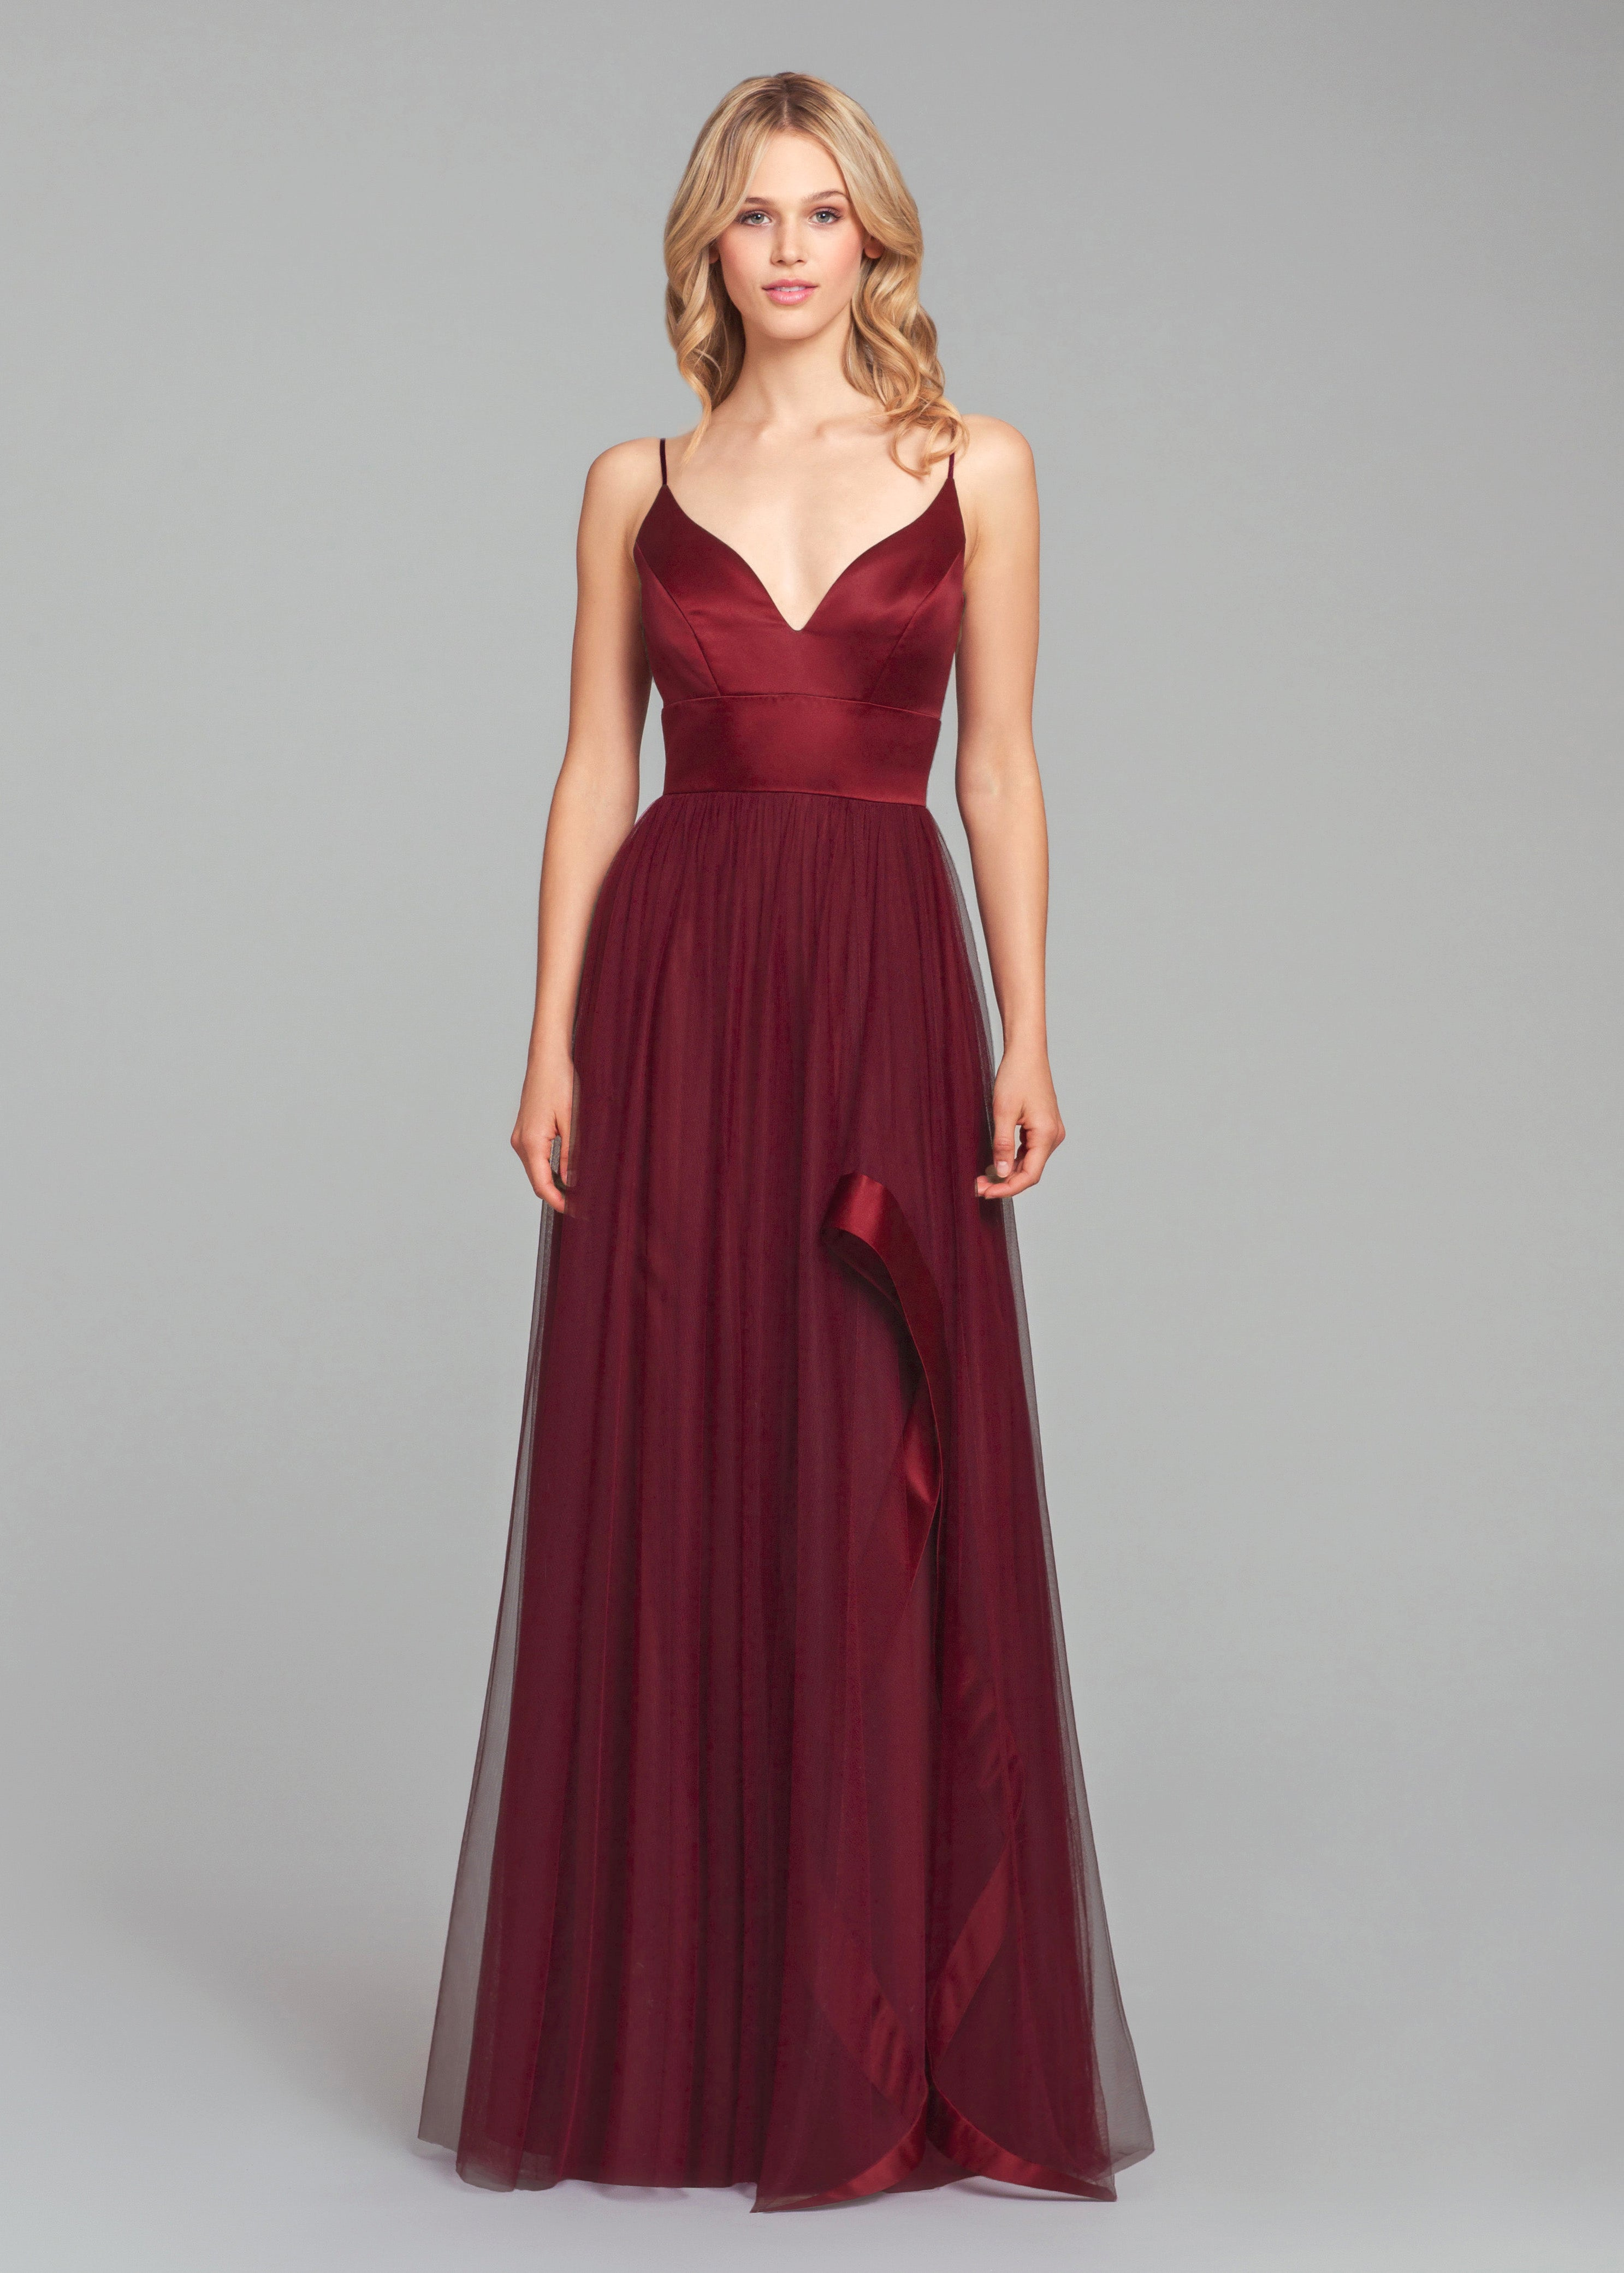 64b250a653c7 Perry - Hayley Paige Occasions Dresses – Eternal Bridal